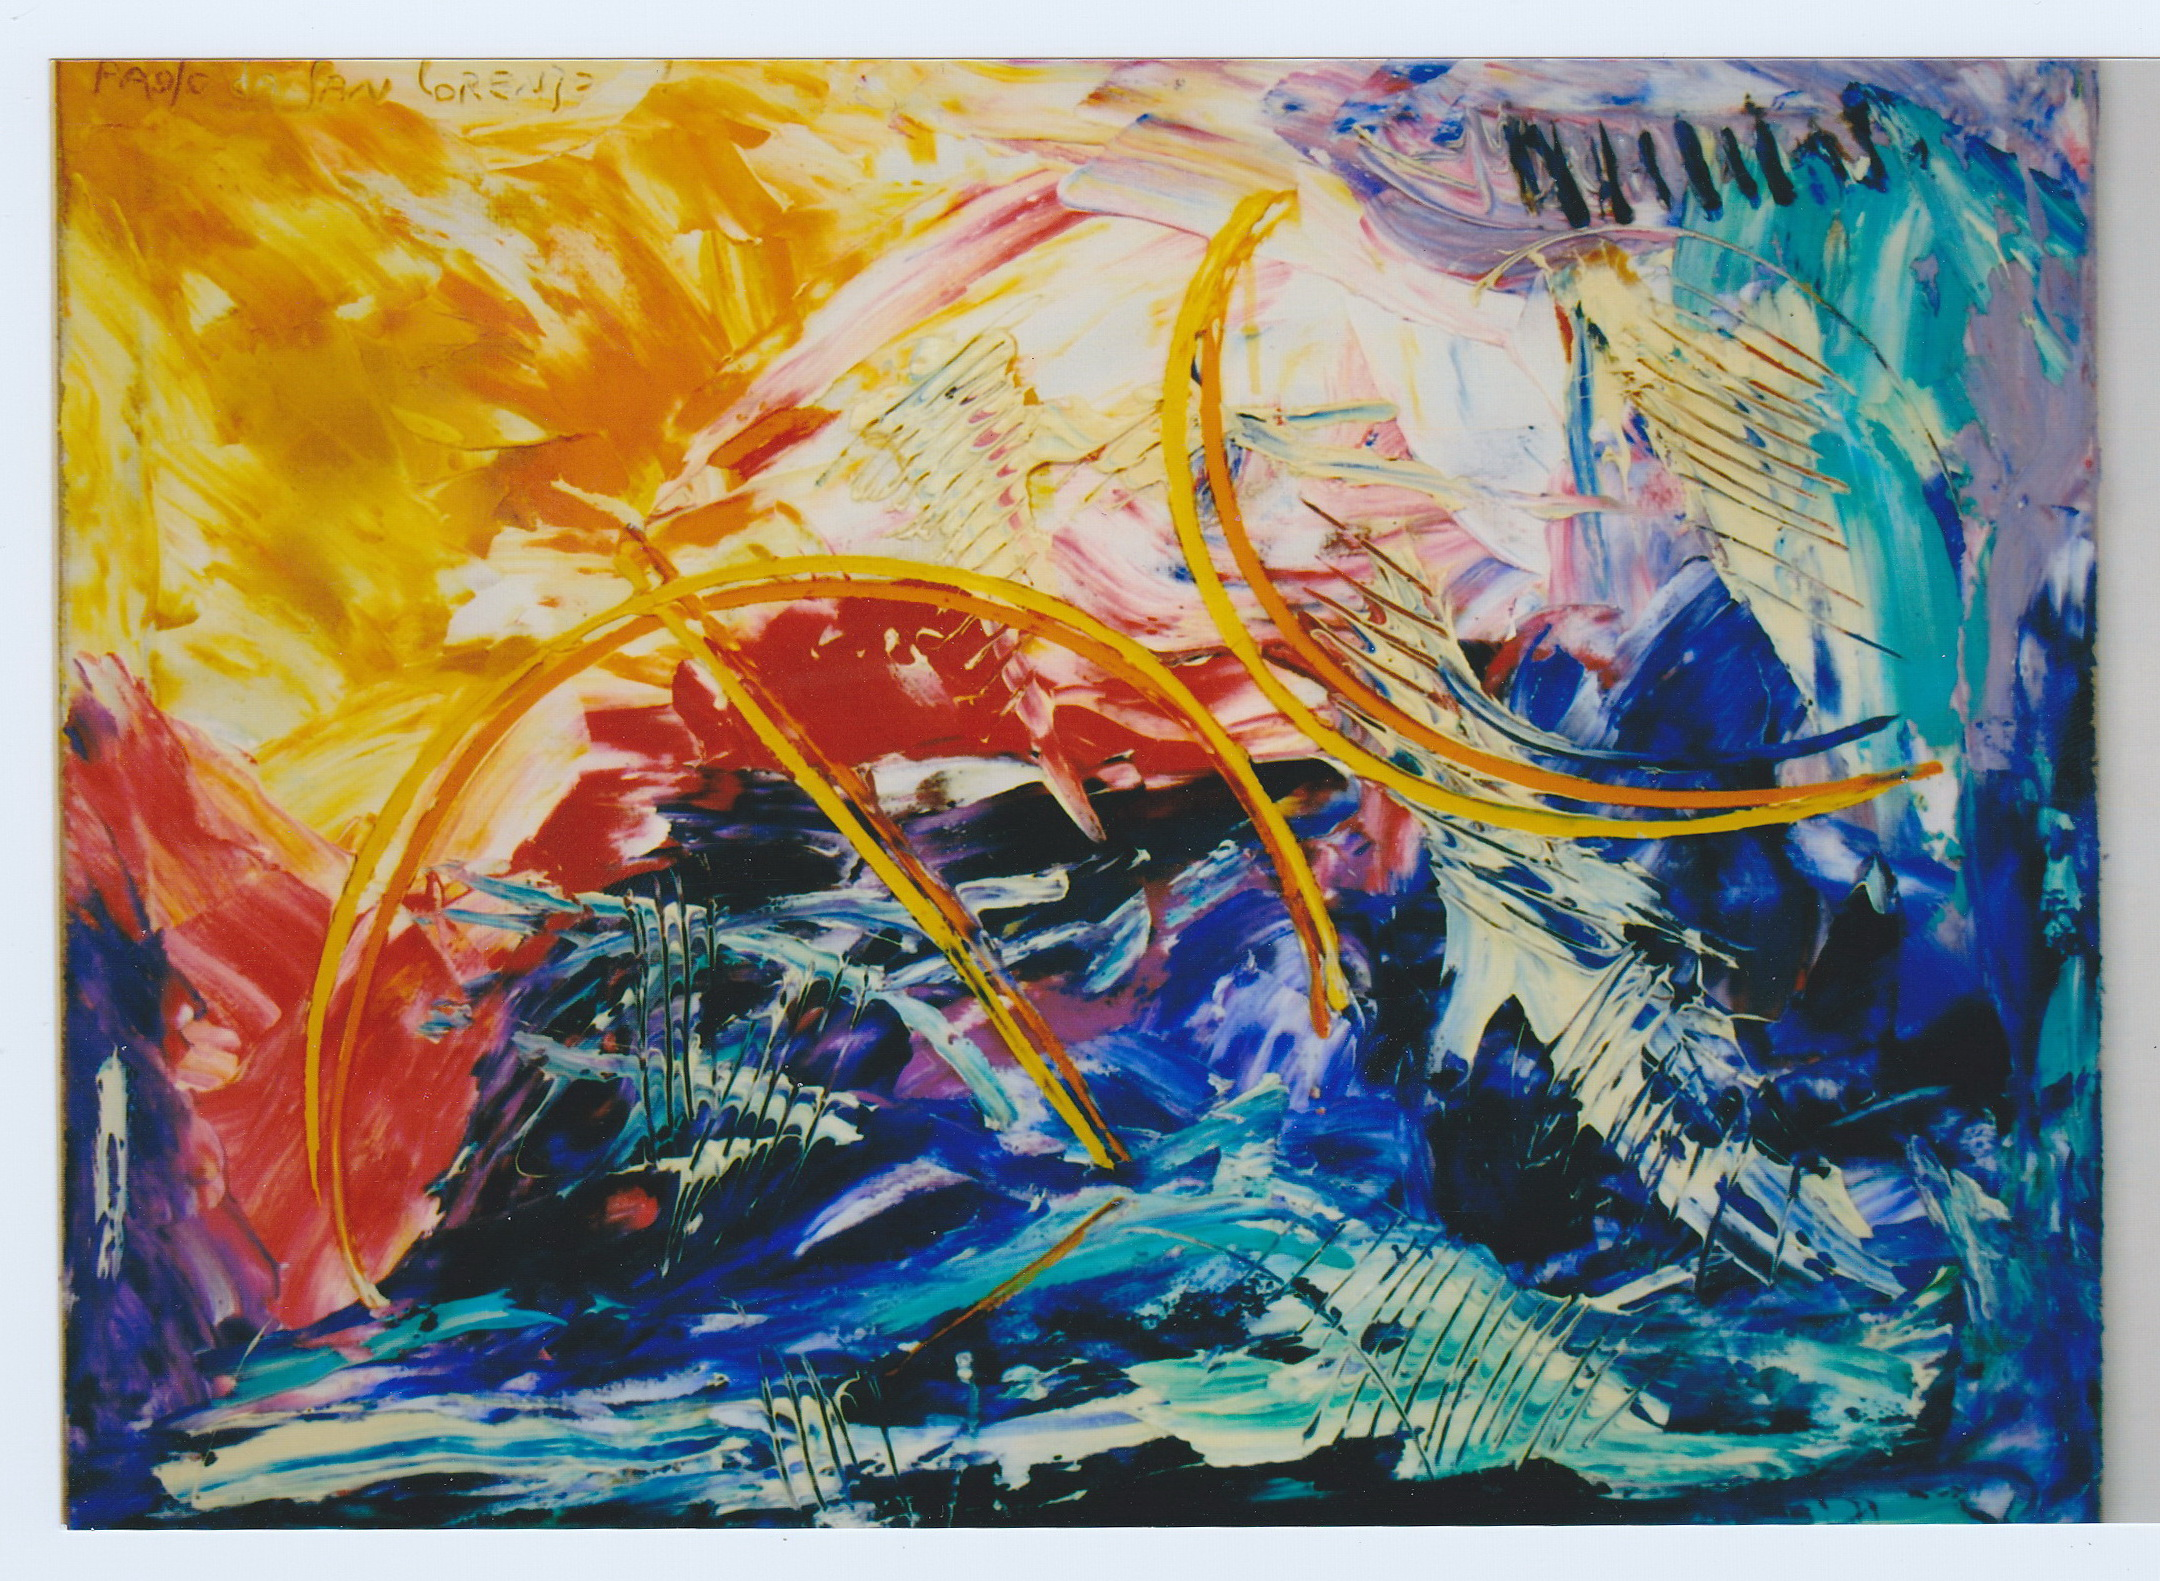 ACTION PAINTING, 2005